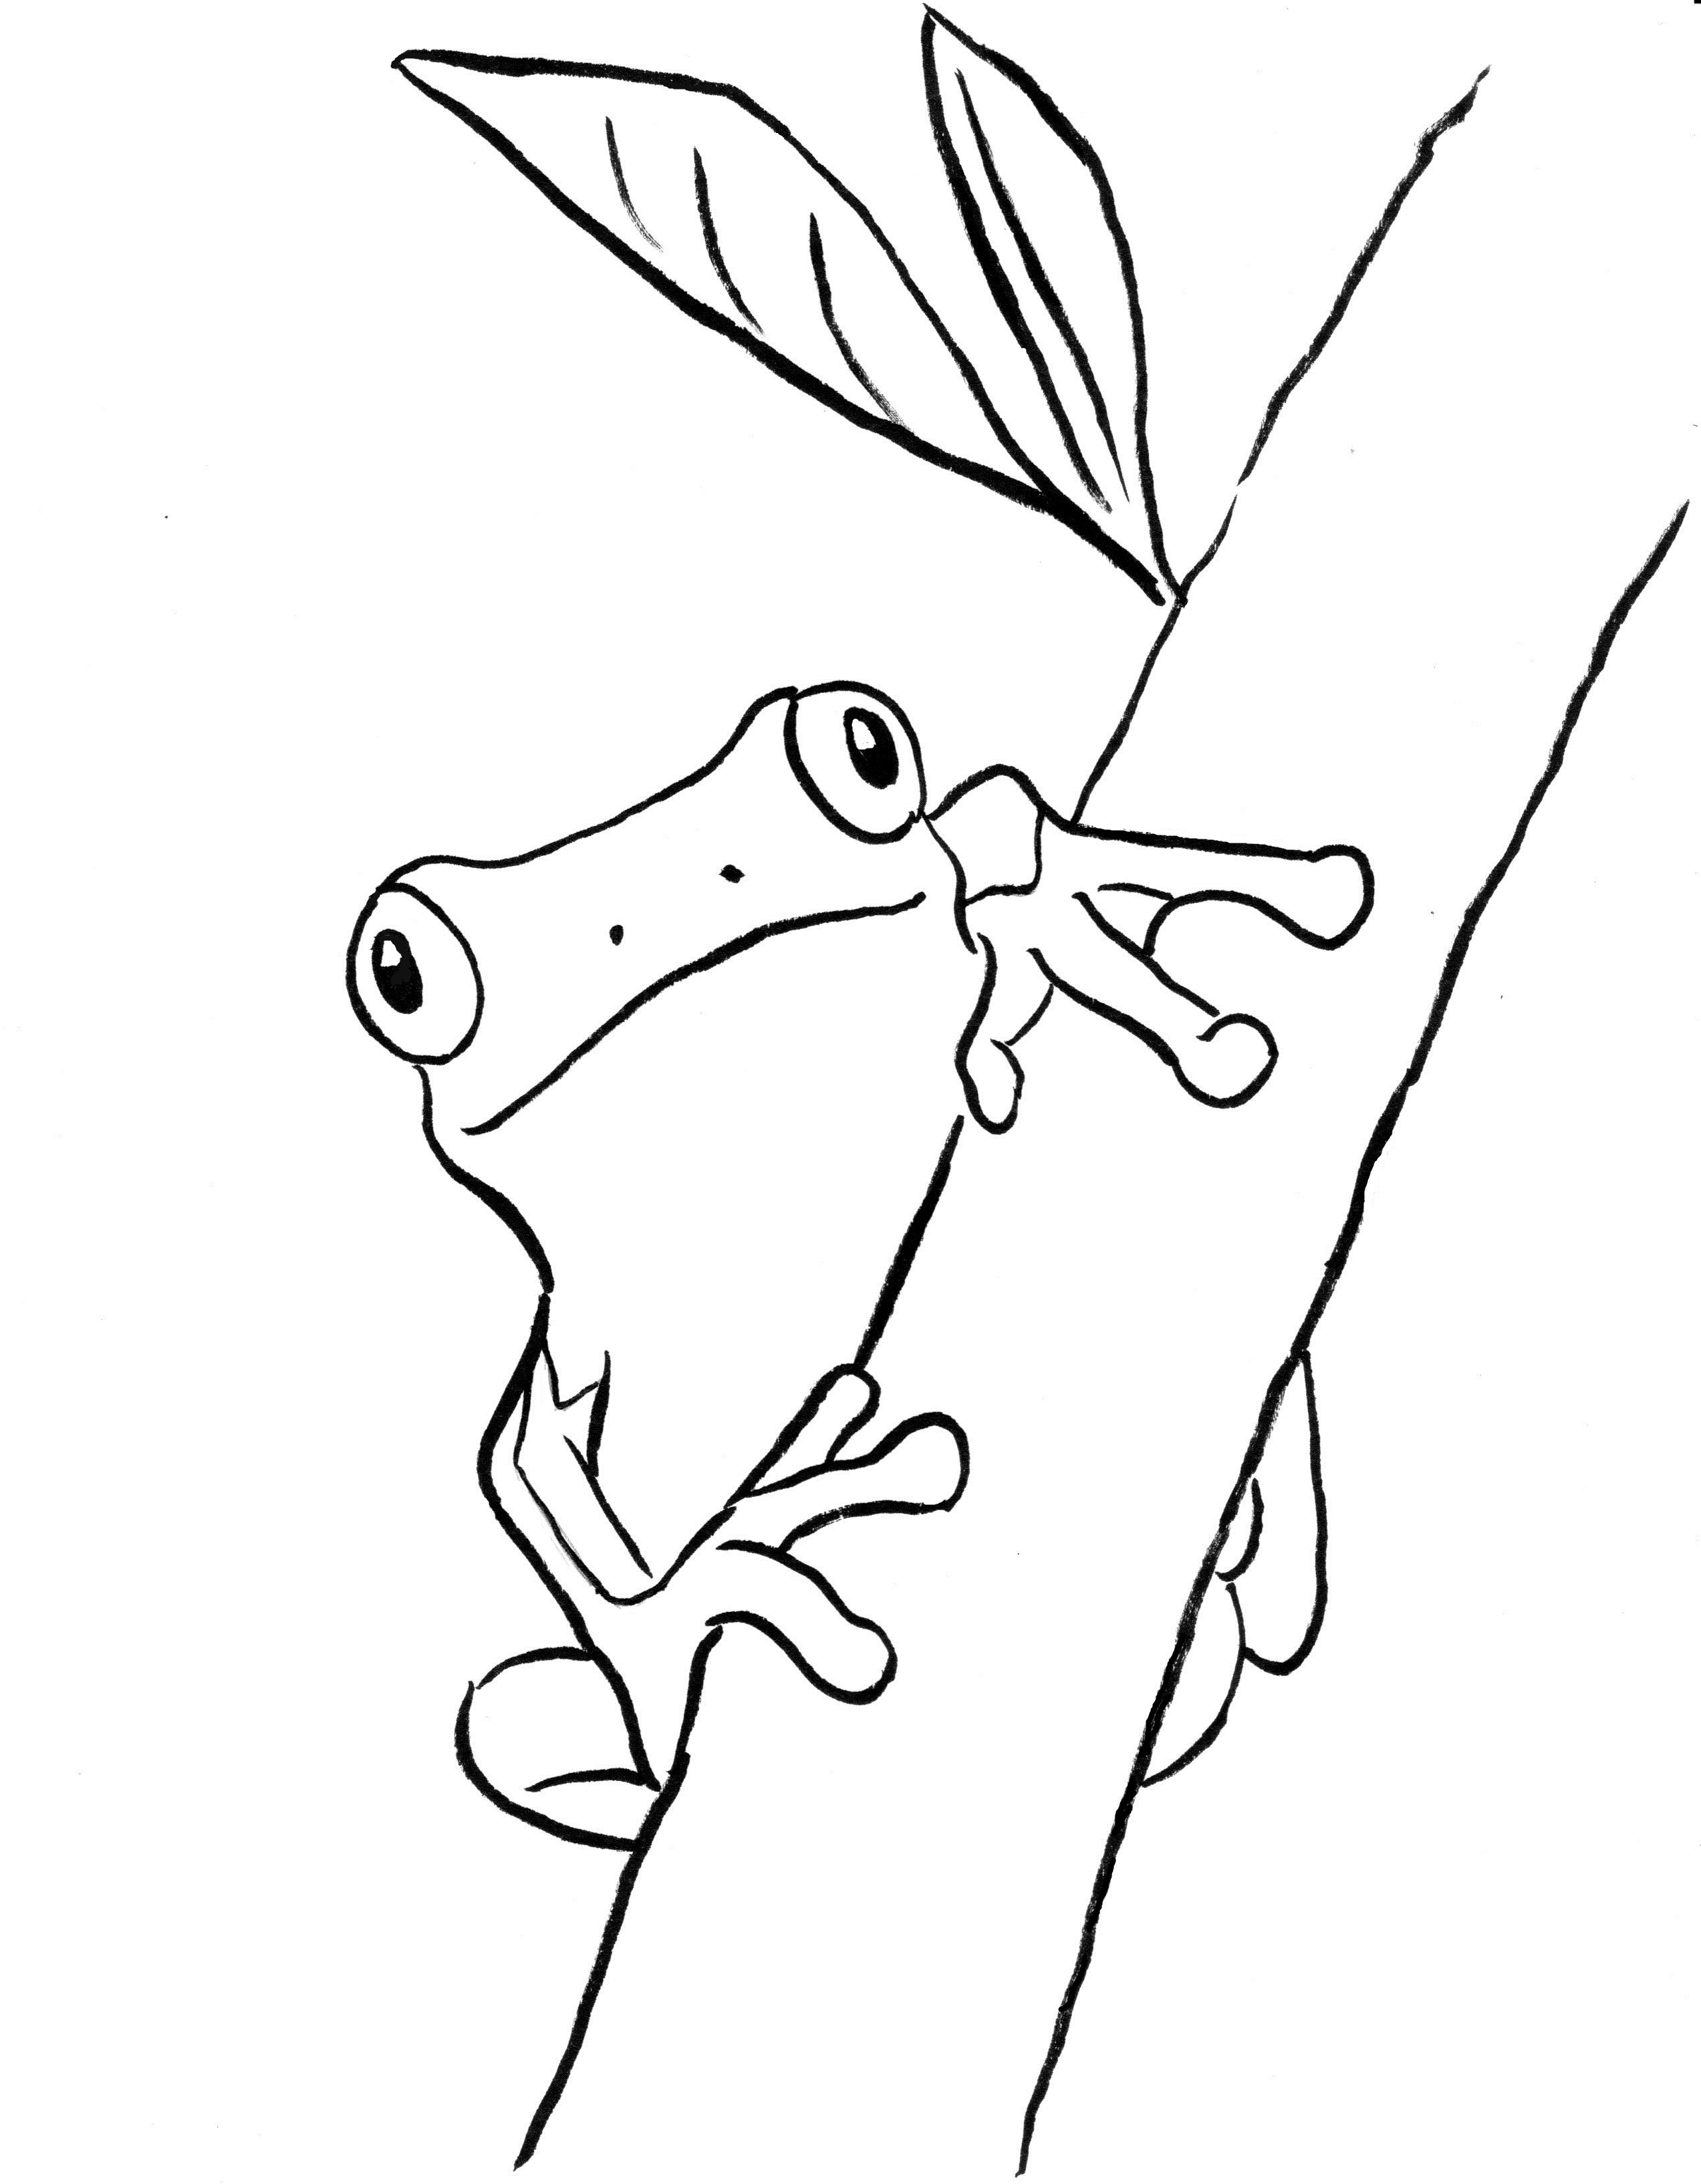 frog coloring book tree frog coloring page art starts book coloring frog